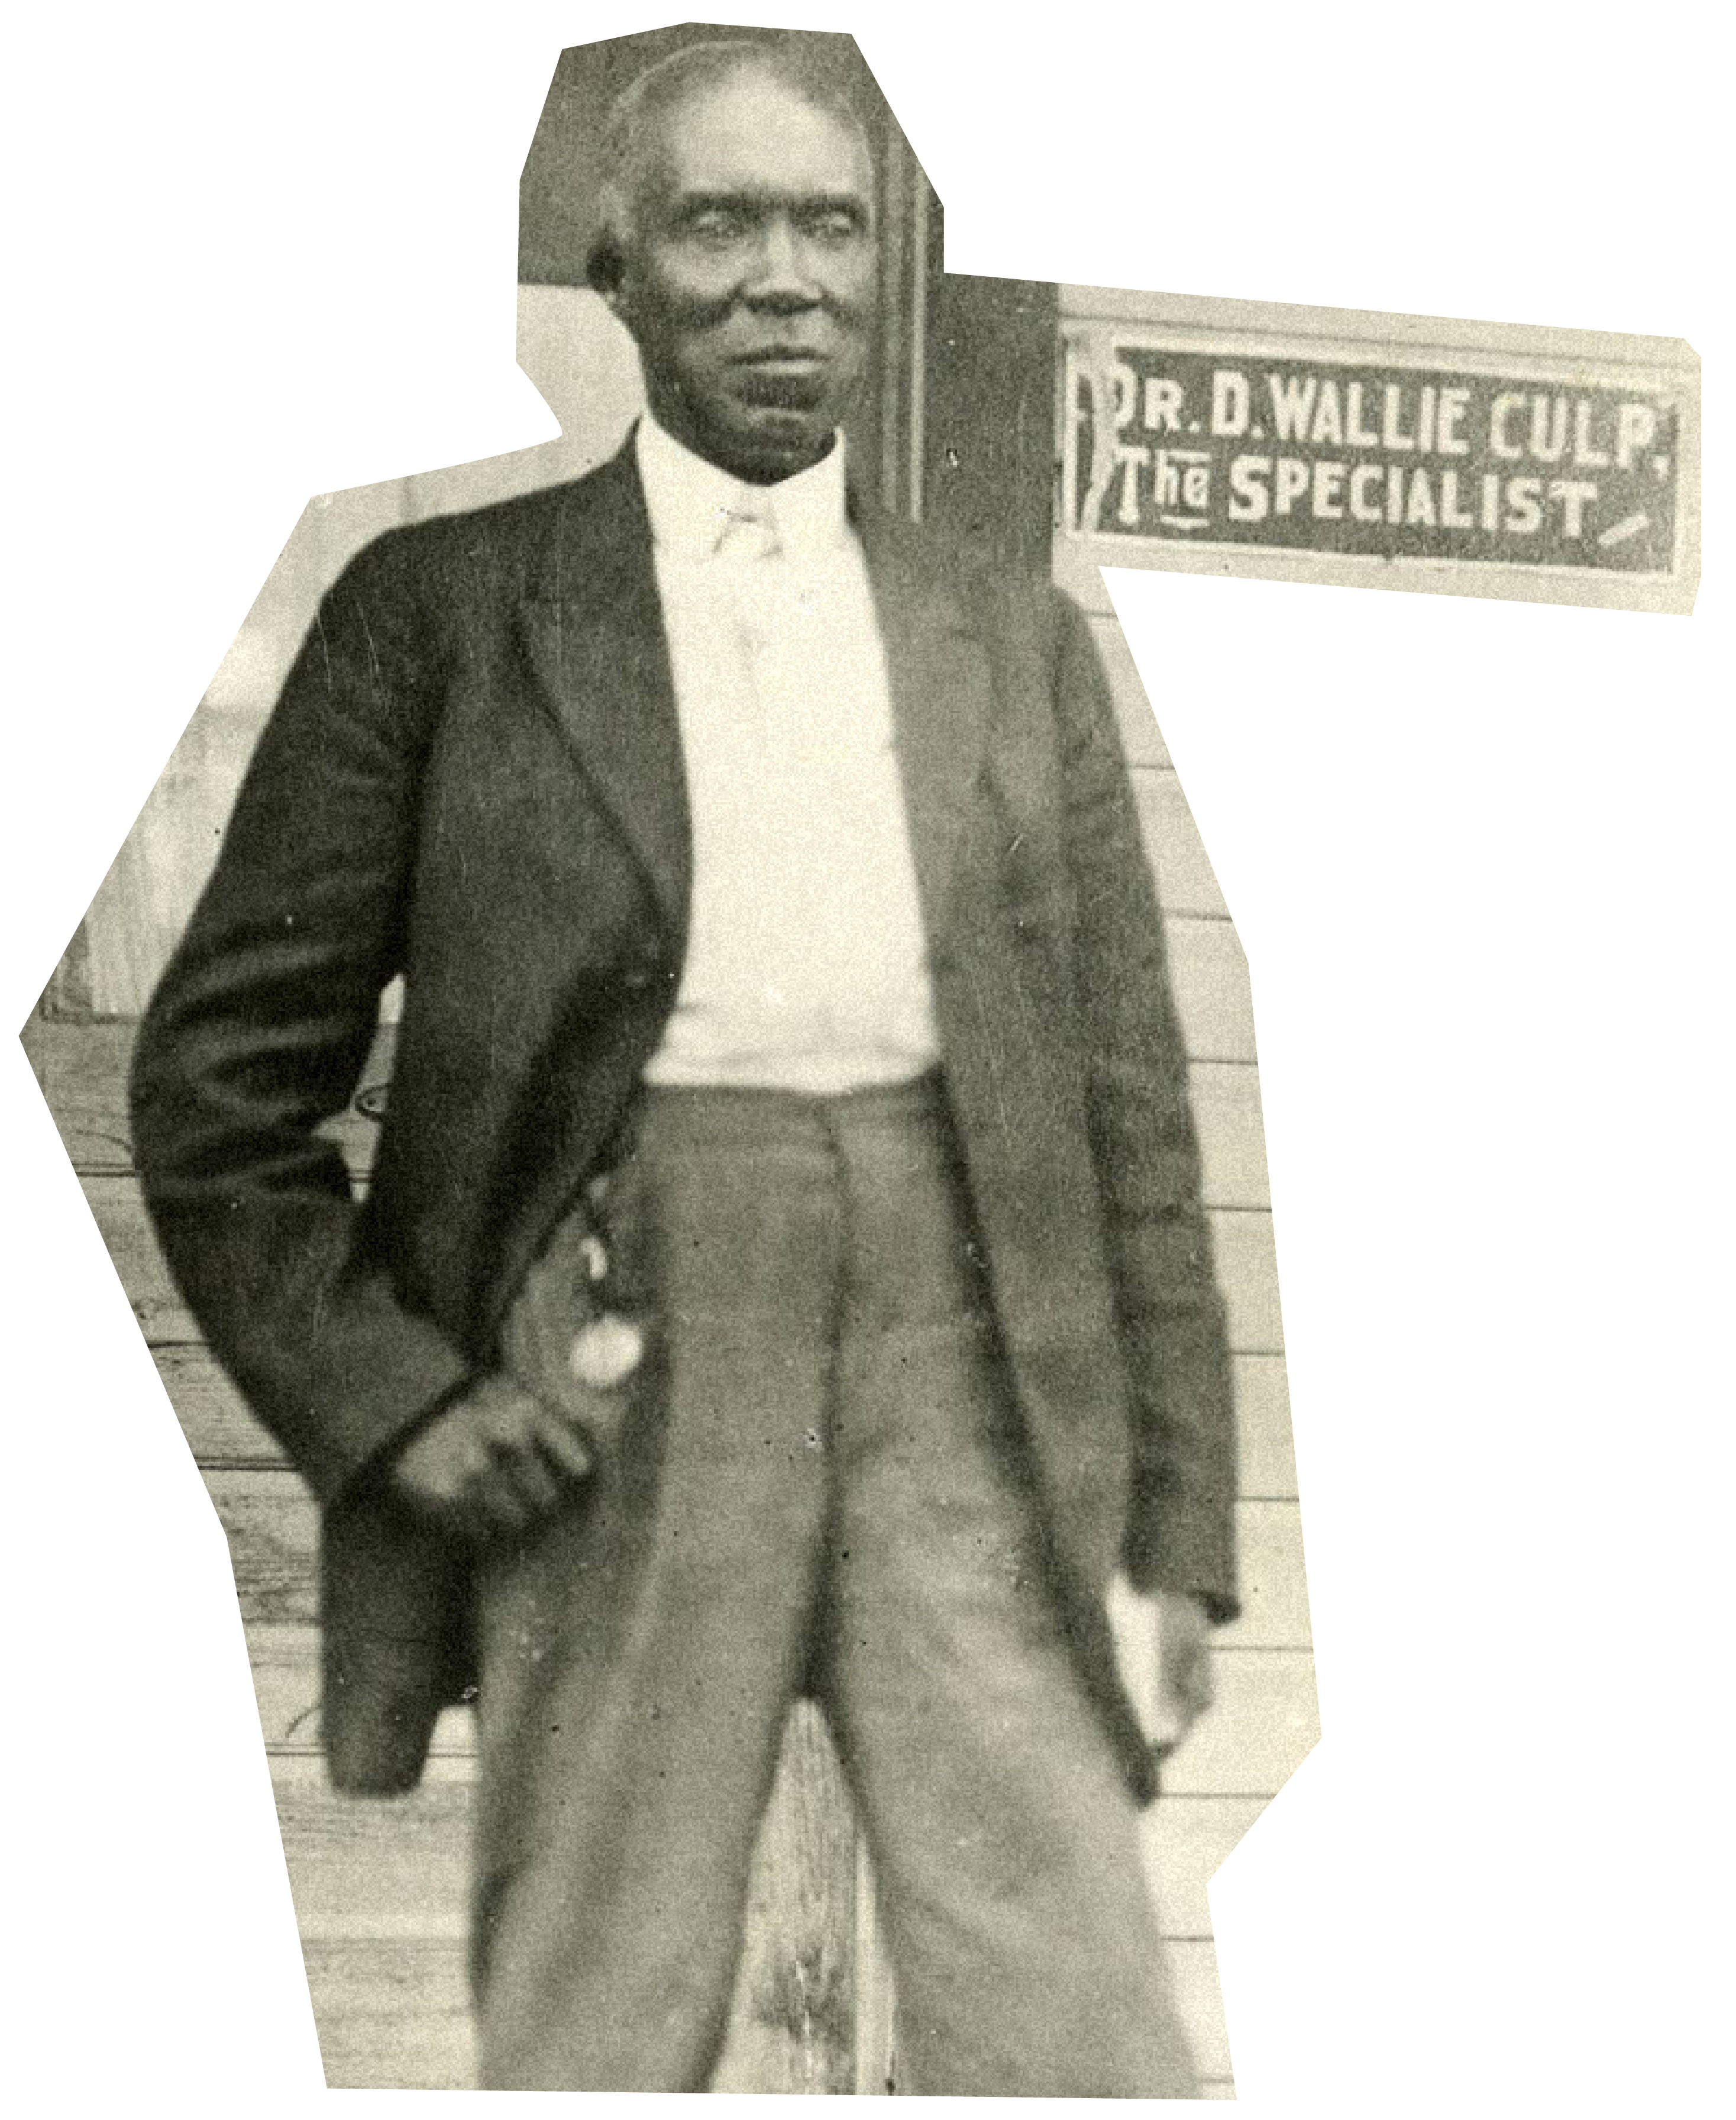 Princeton Theological Seminary student Daniel Wallace Culp in the 1870s.